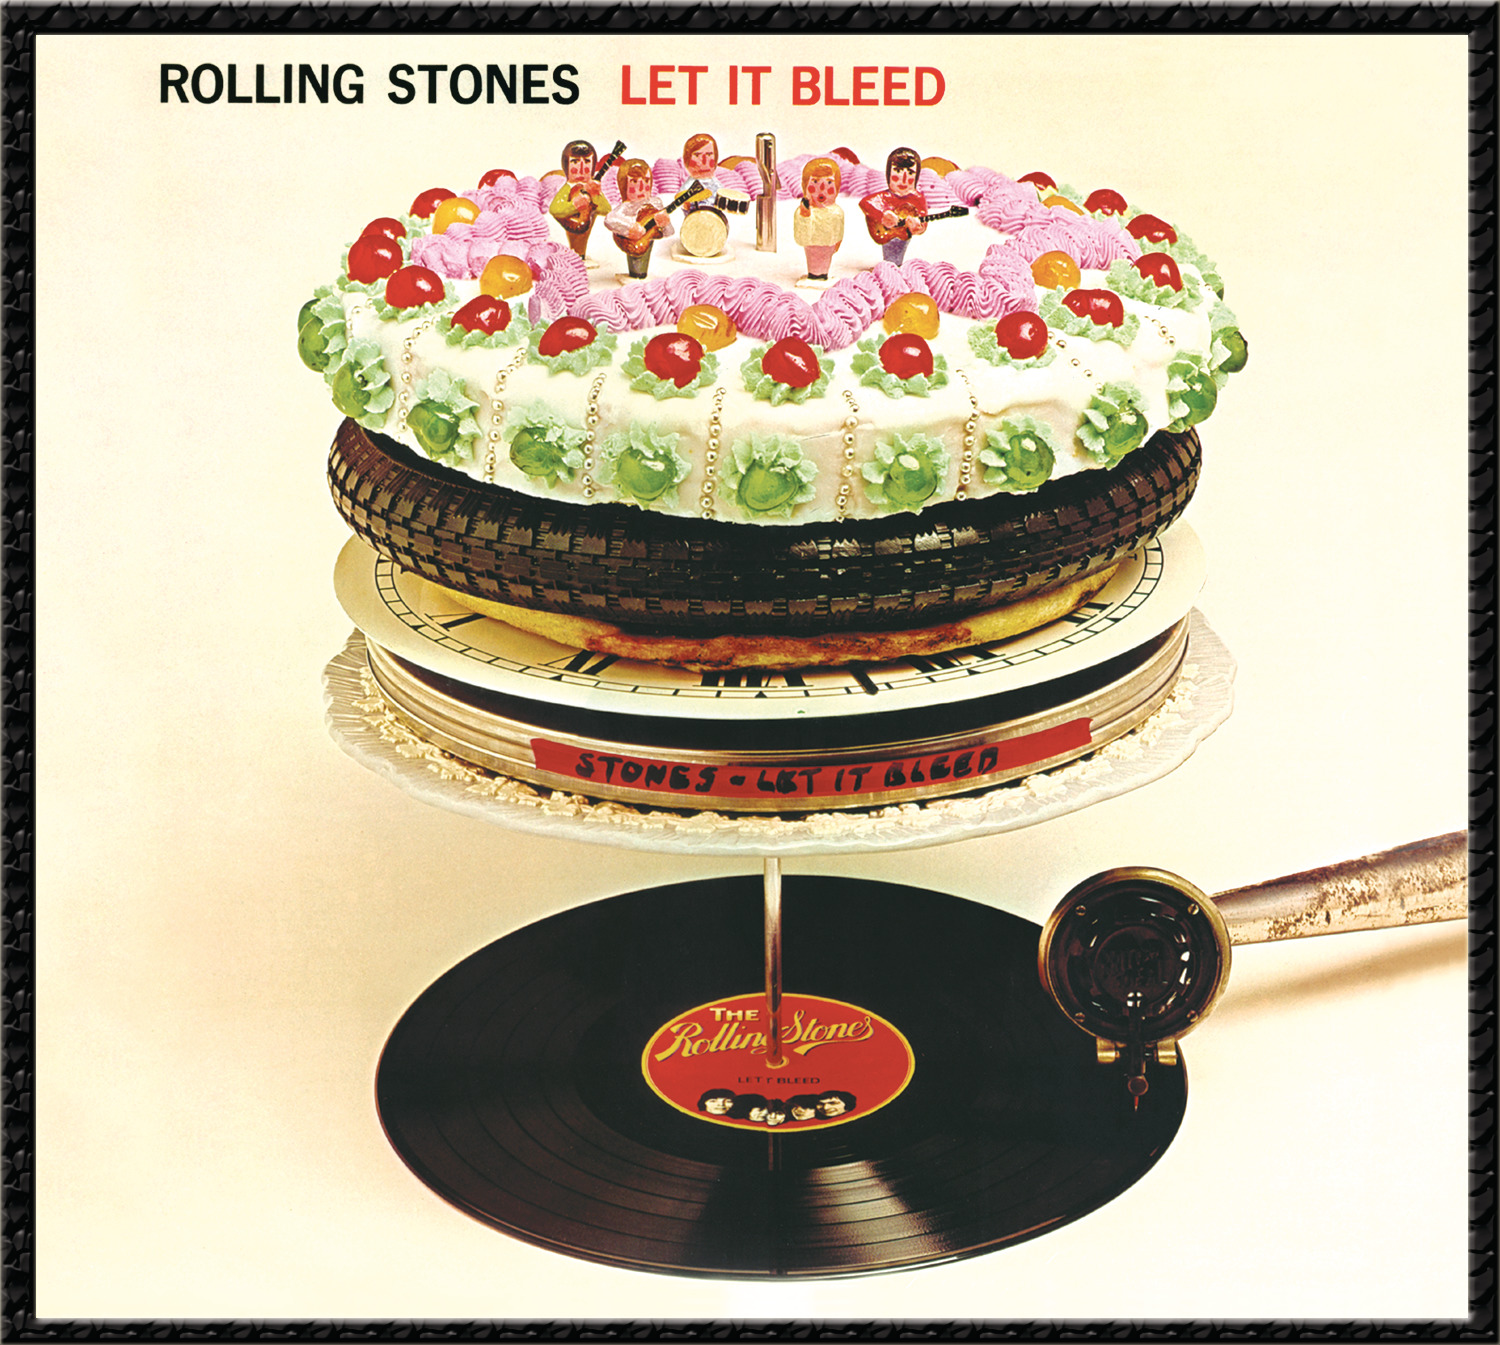 Listen Free to The Rolling Stones - You Can't Always Get What You Want Radio | iHeartRadio